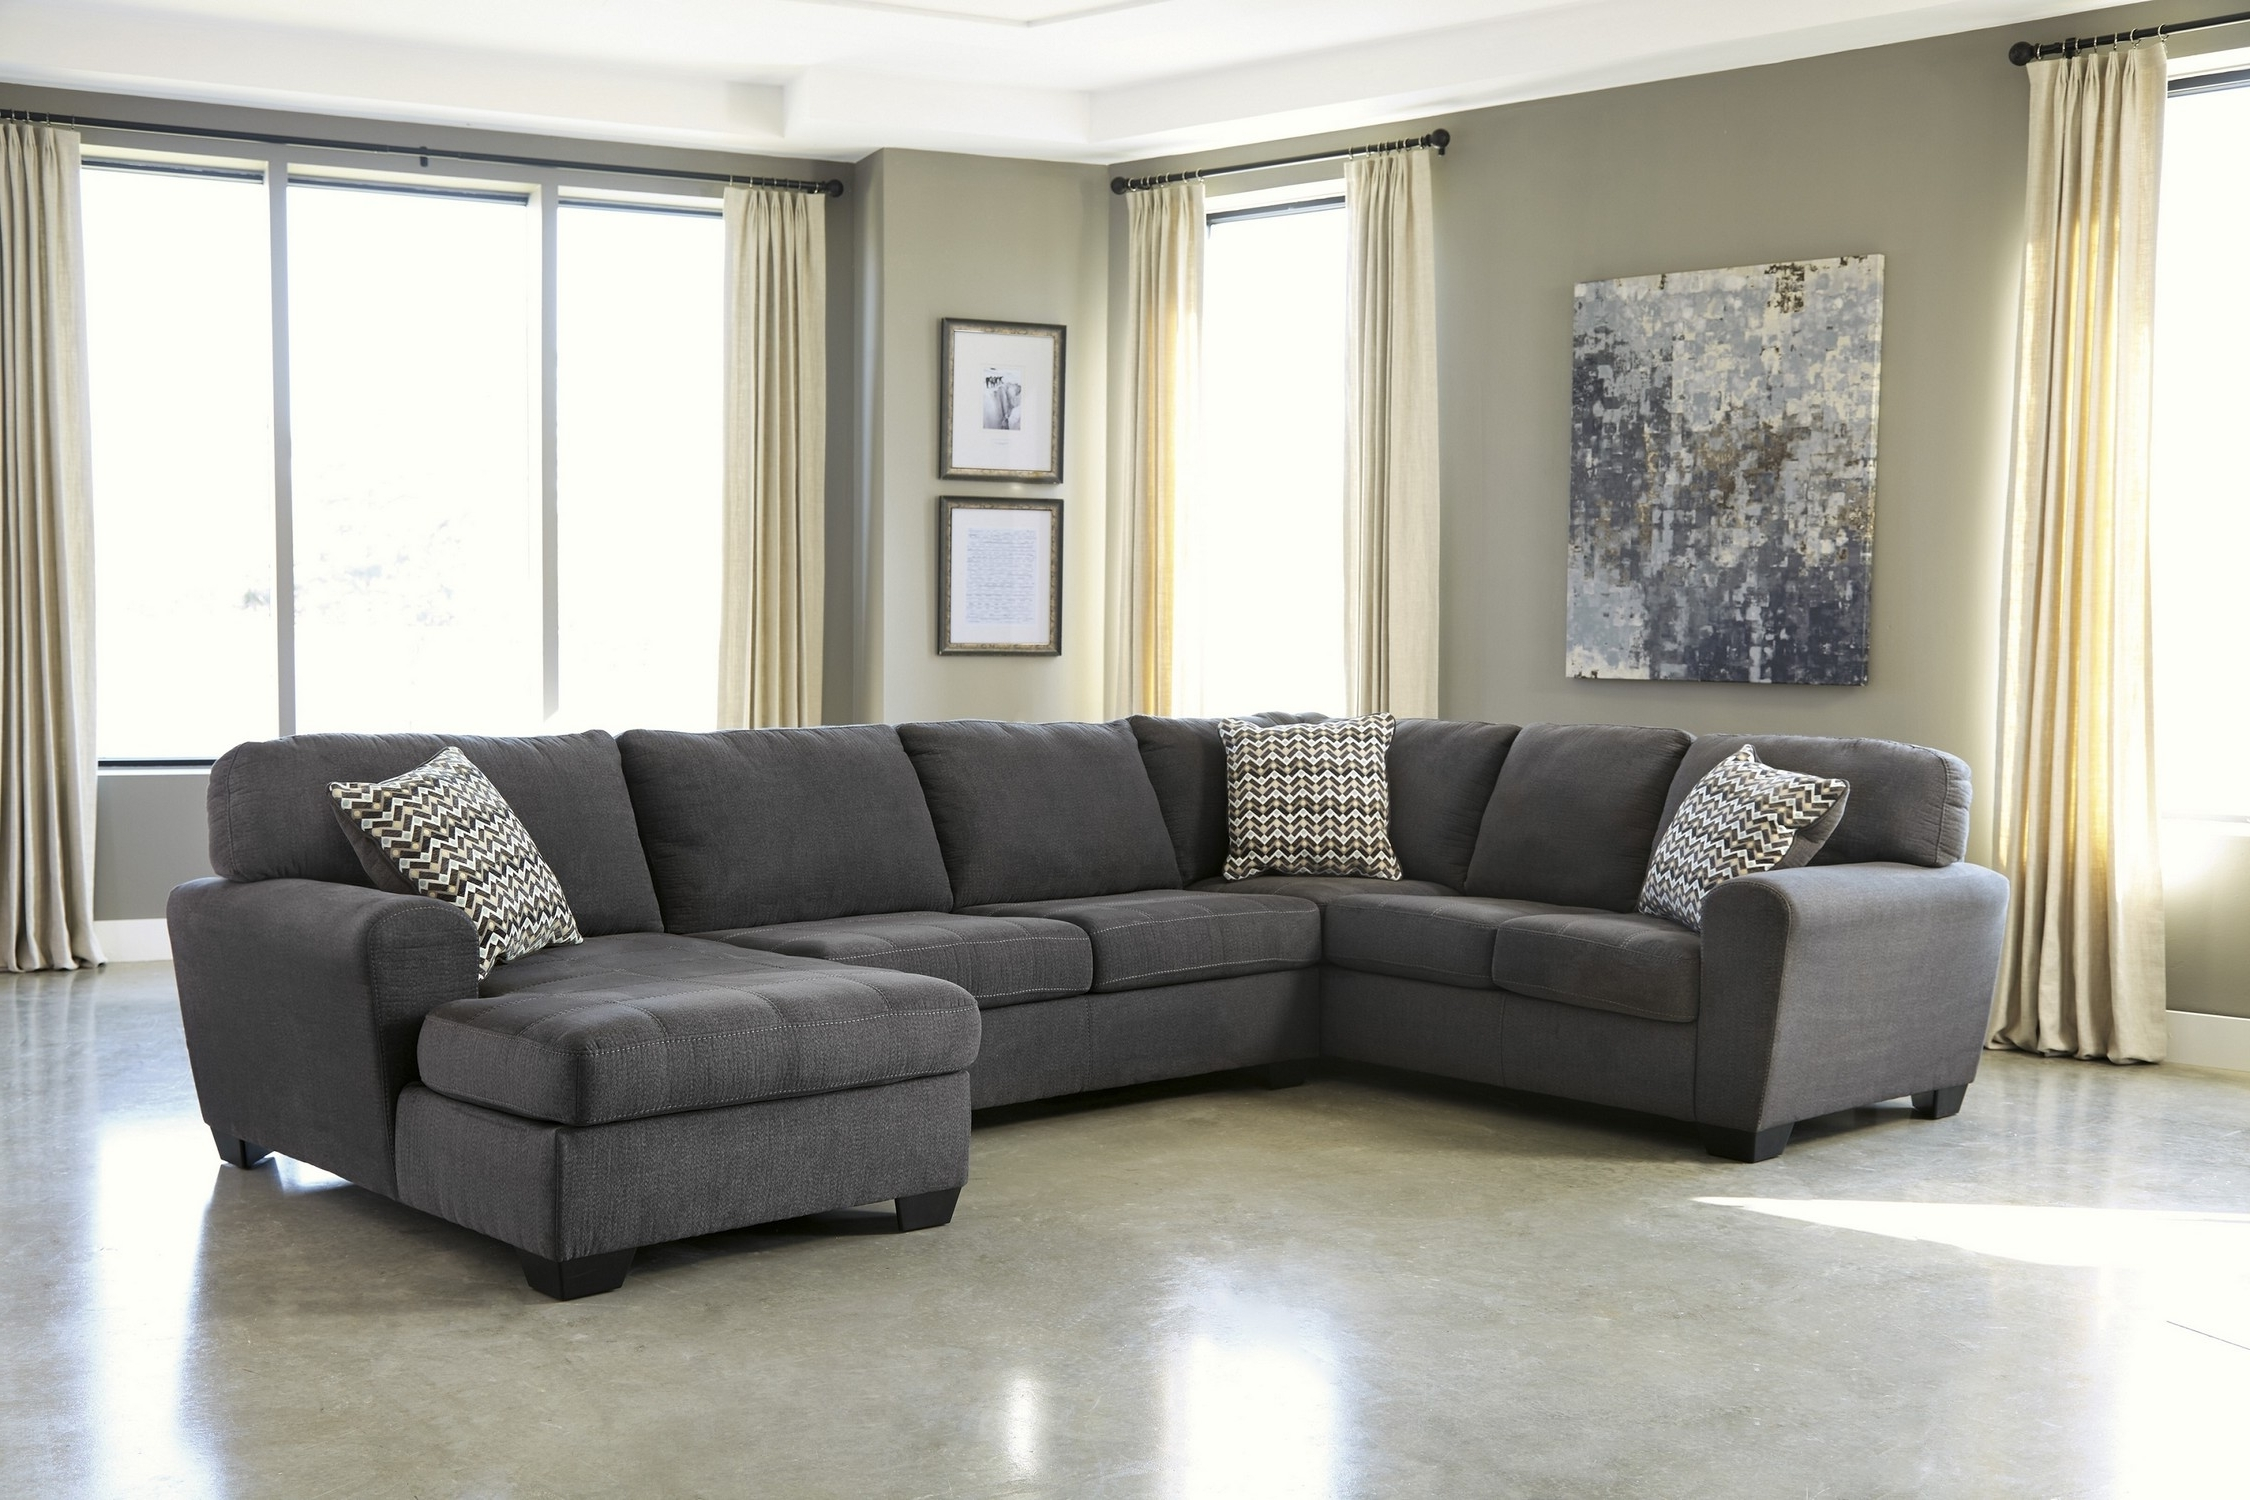 modern charcoal remodel about gray grey ideas with new sectional sofa couch